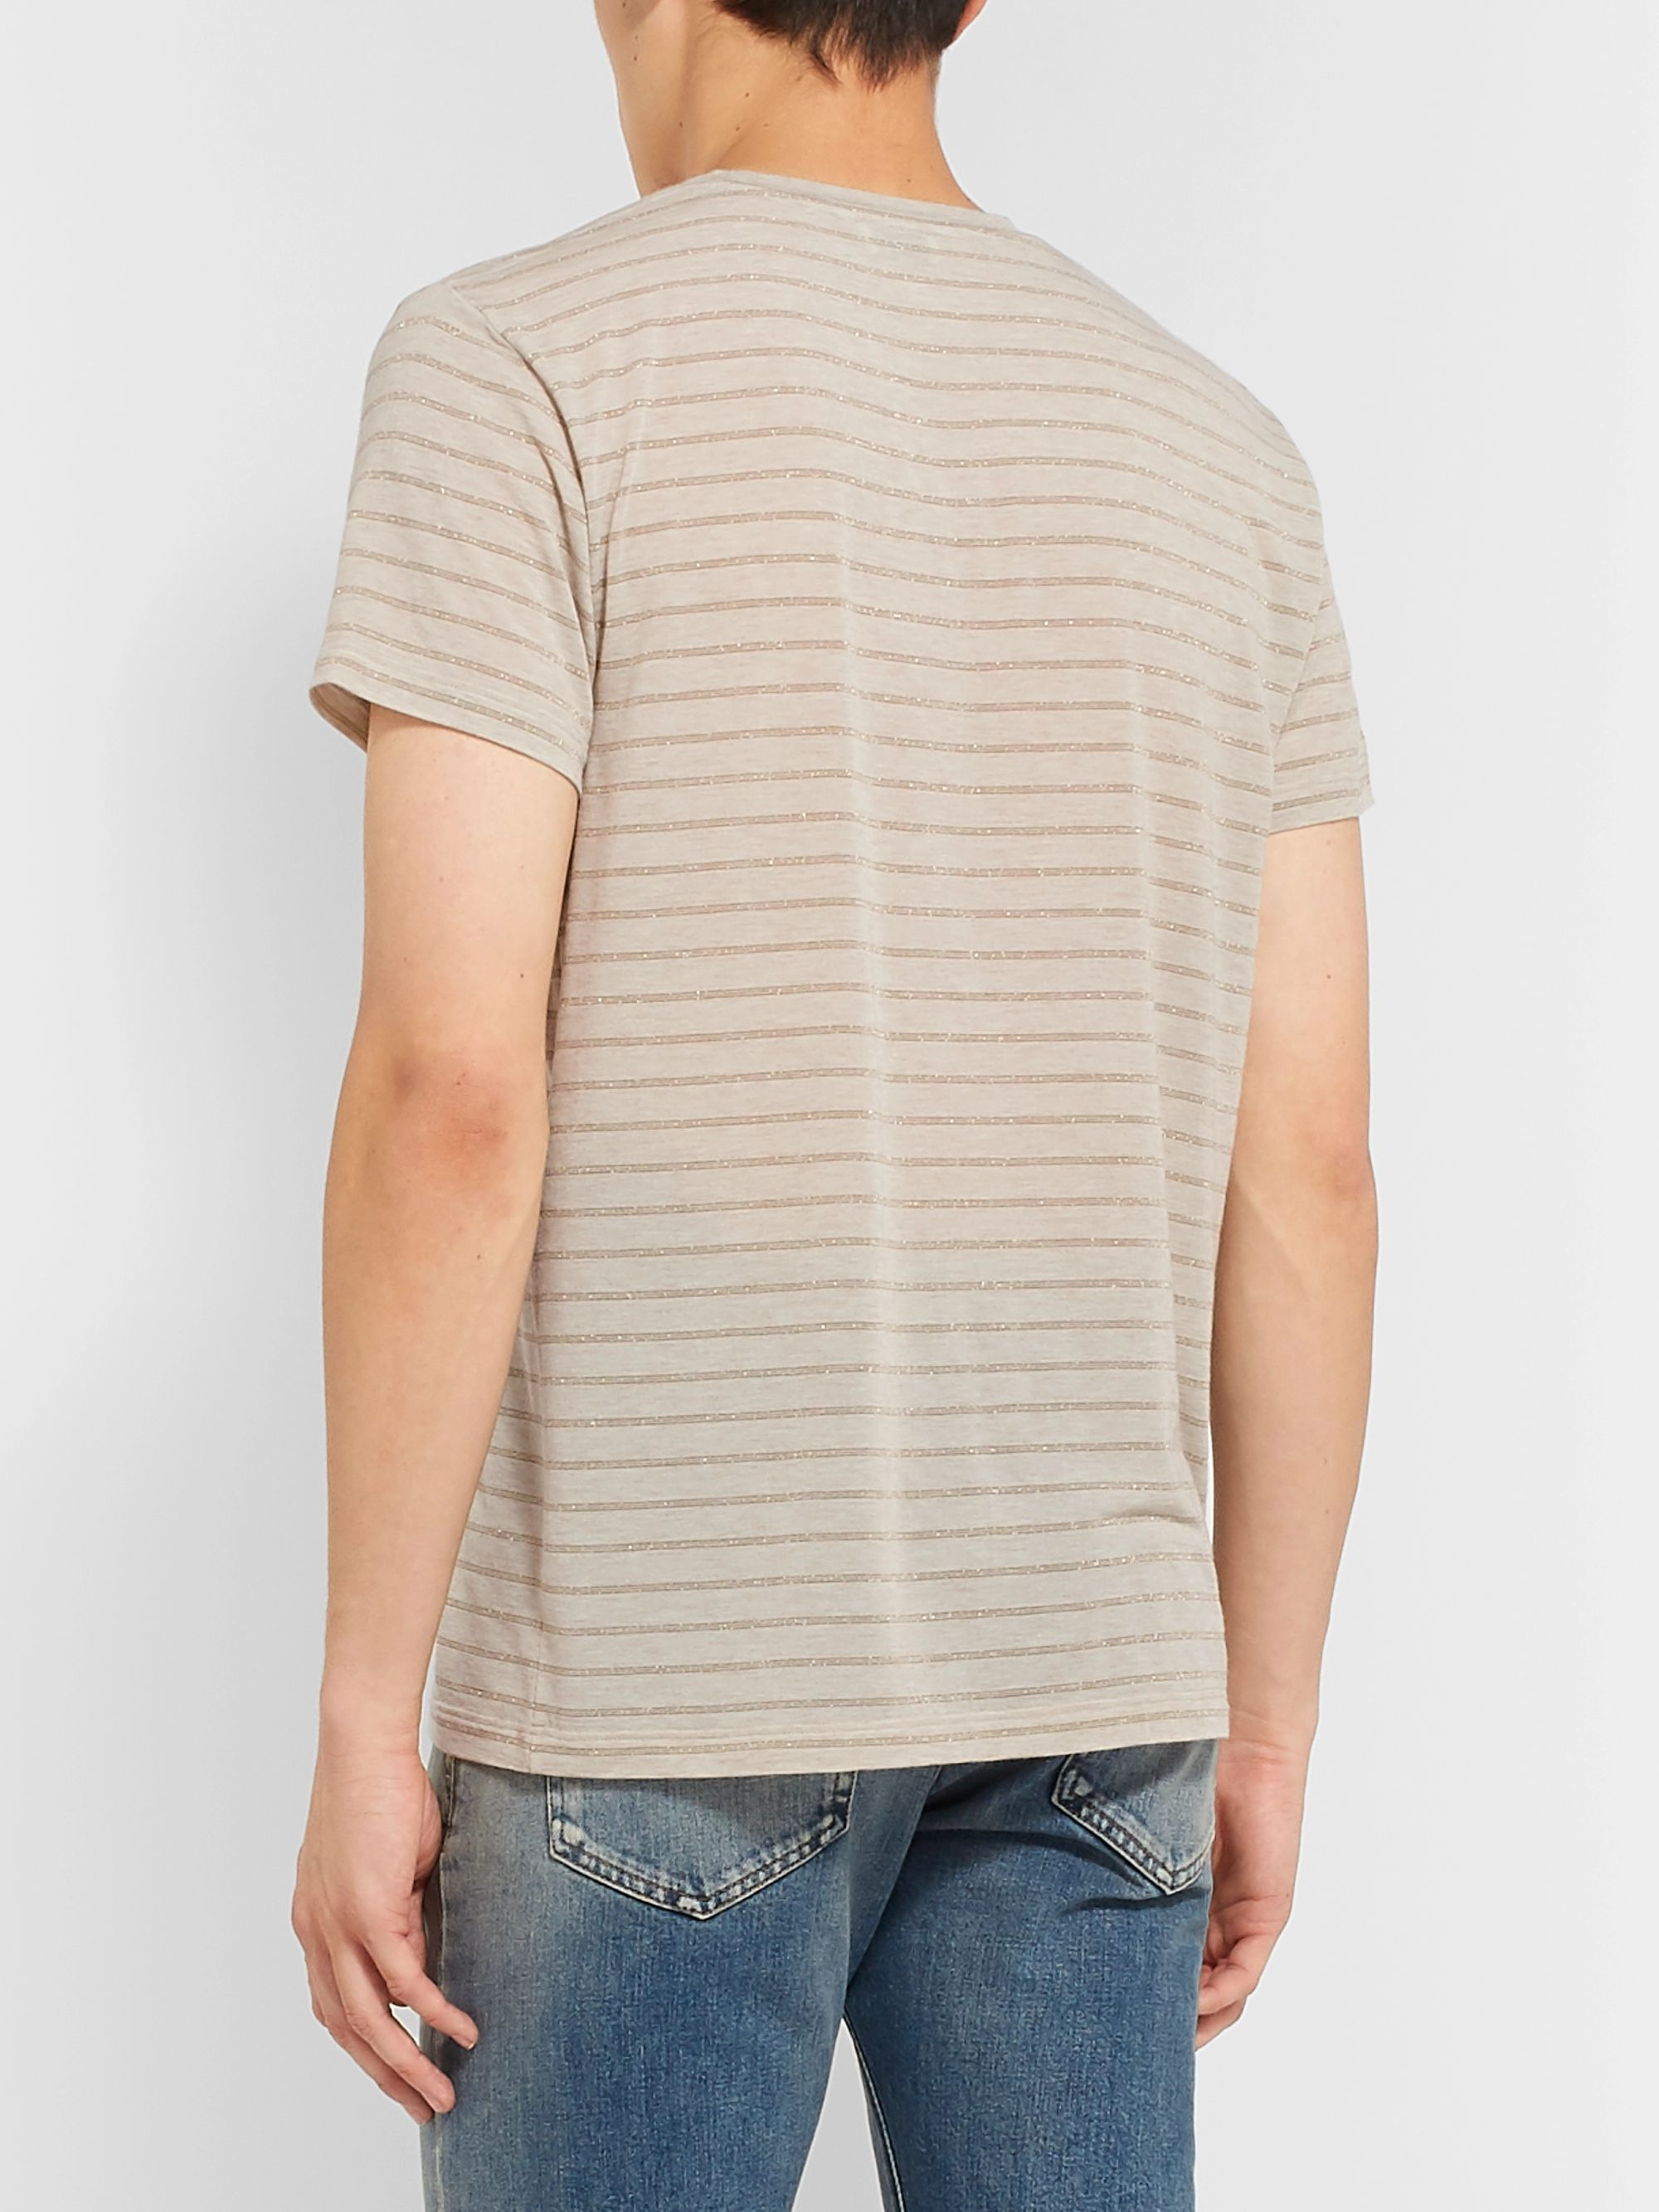 SAINT LAURENT Metallic Striped Modal-Blend Jersey T-shirt